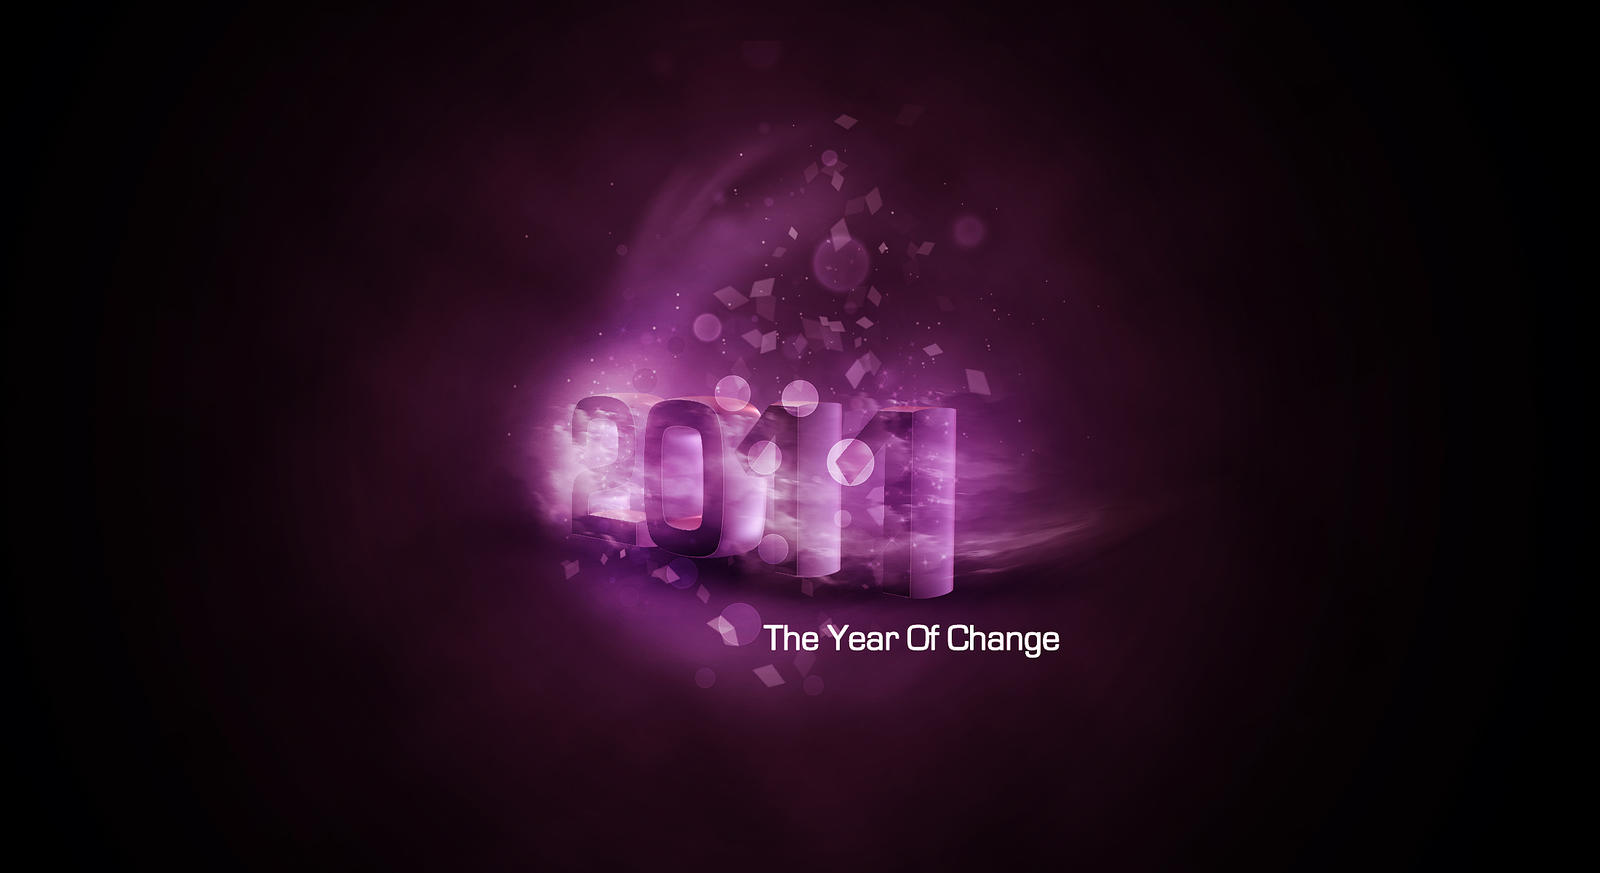 2011 The Year of Change by LifeEndsNow